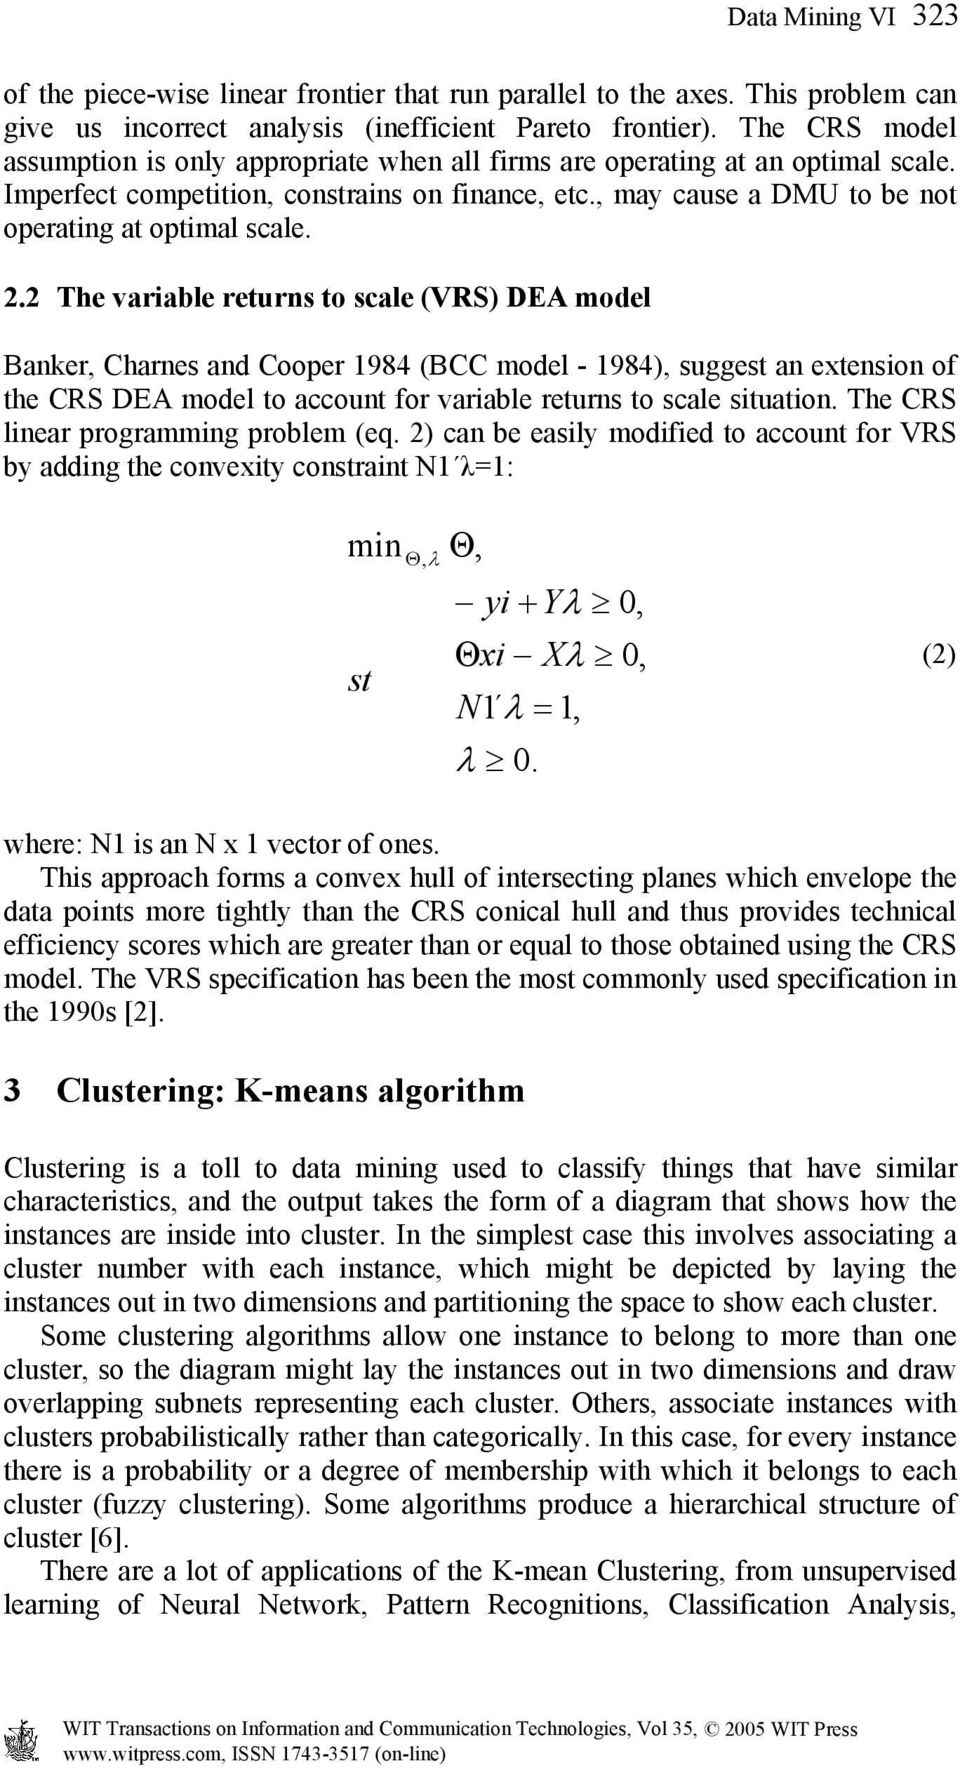 2.2 The variable returns to scale (VRS) DEA model Banker, Charnes and Cooper 1984 (BCC model - 1984), suggest an extension of the CRS DEA model to account for variable returns to scale situation.